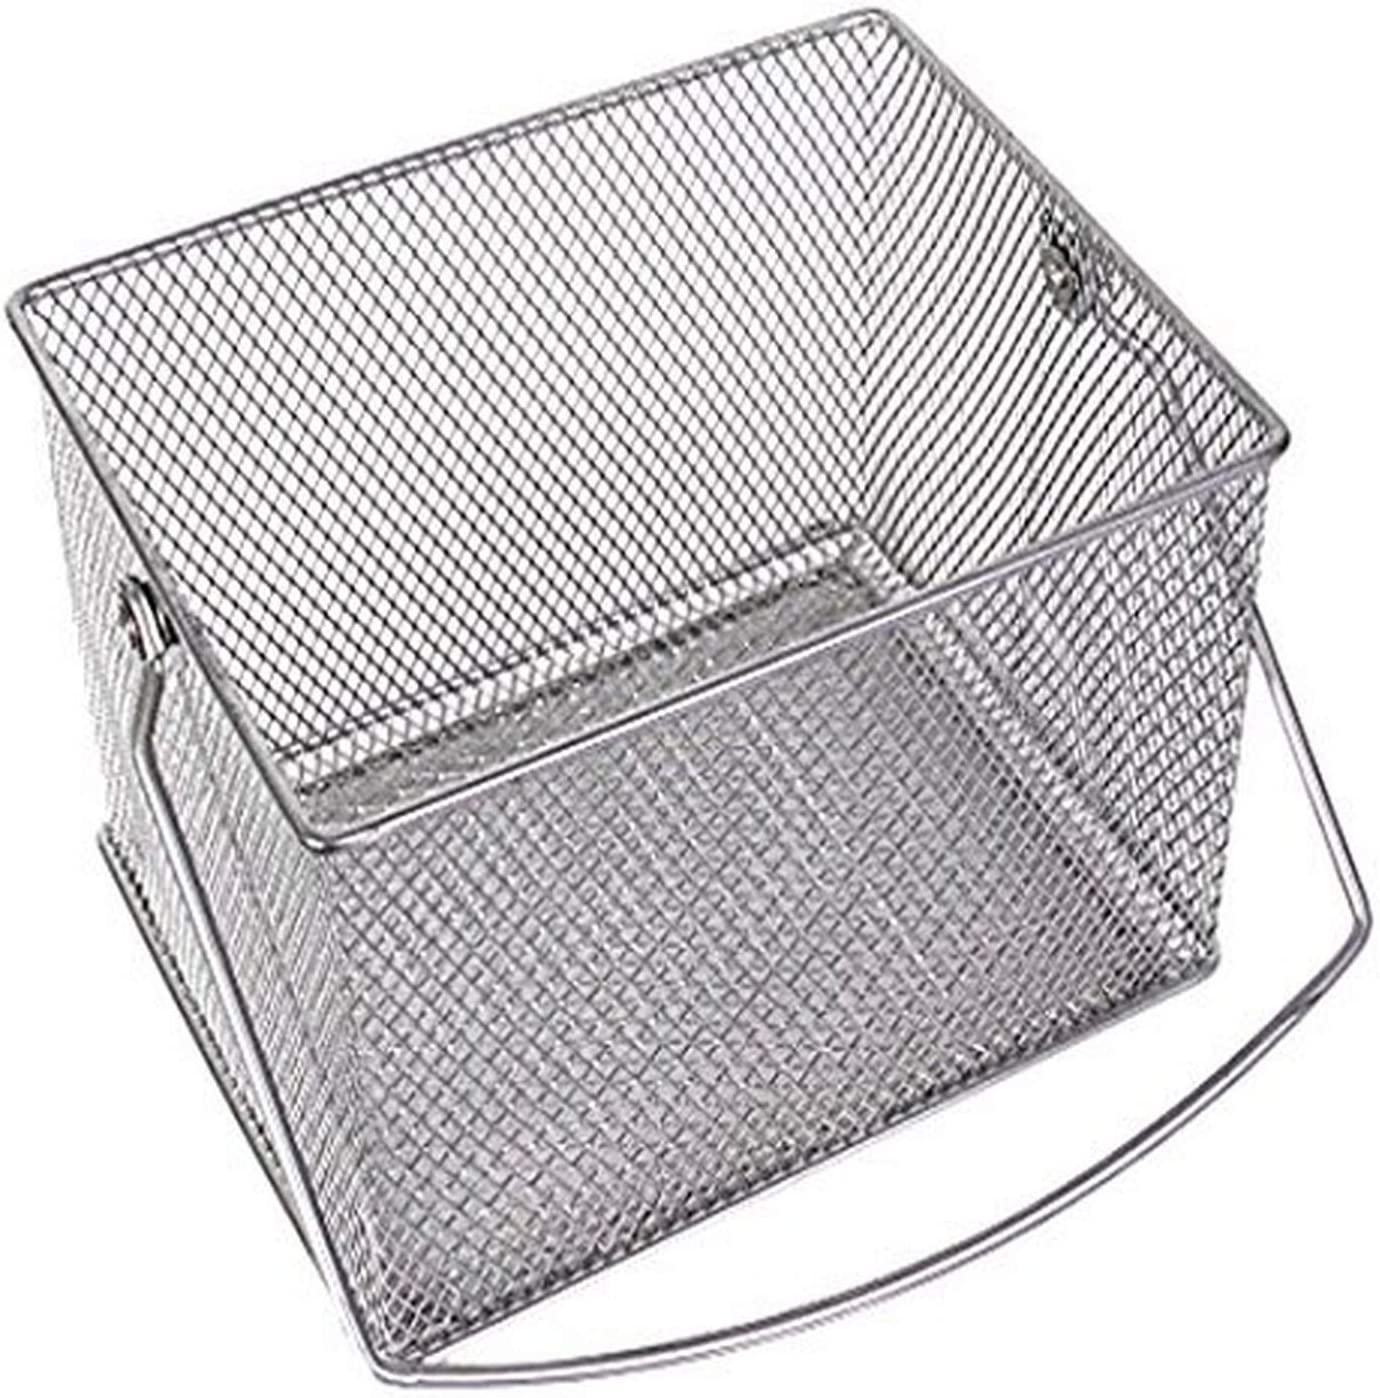 YBM Popular shop is the lowest price challenge Home Rectangle Max 56% OFF Mesh Silver Caddy Supply Condiment Kitchen